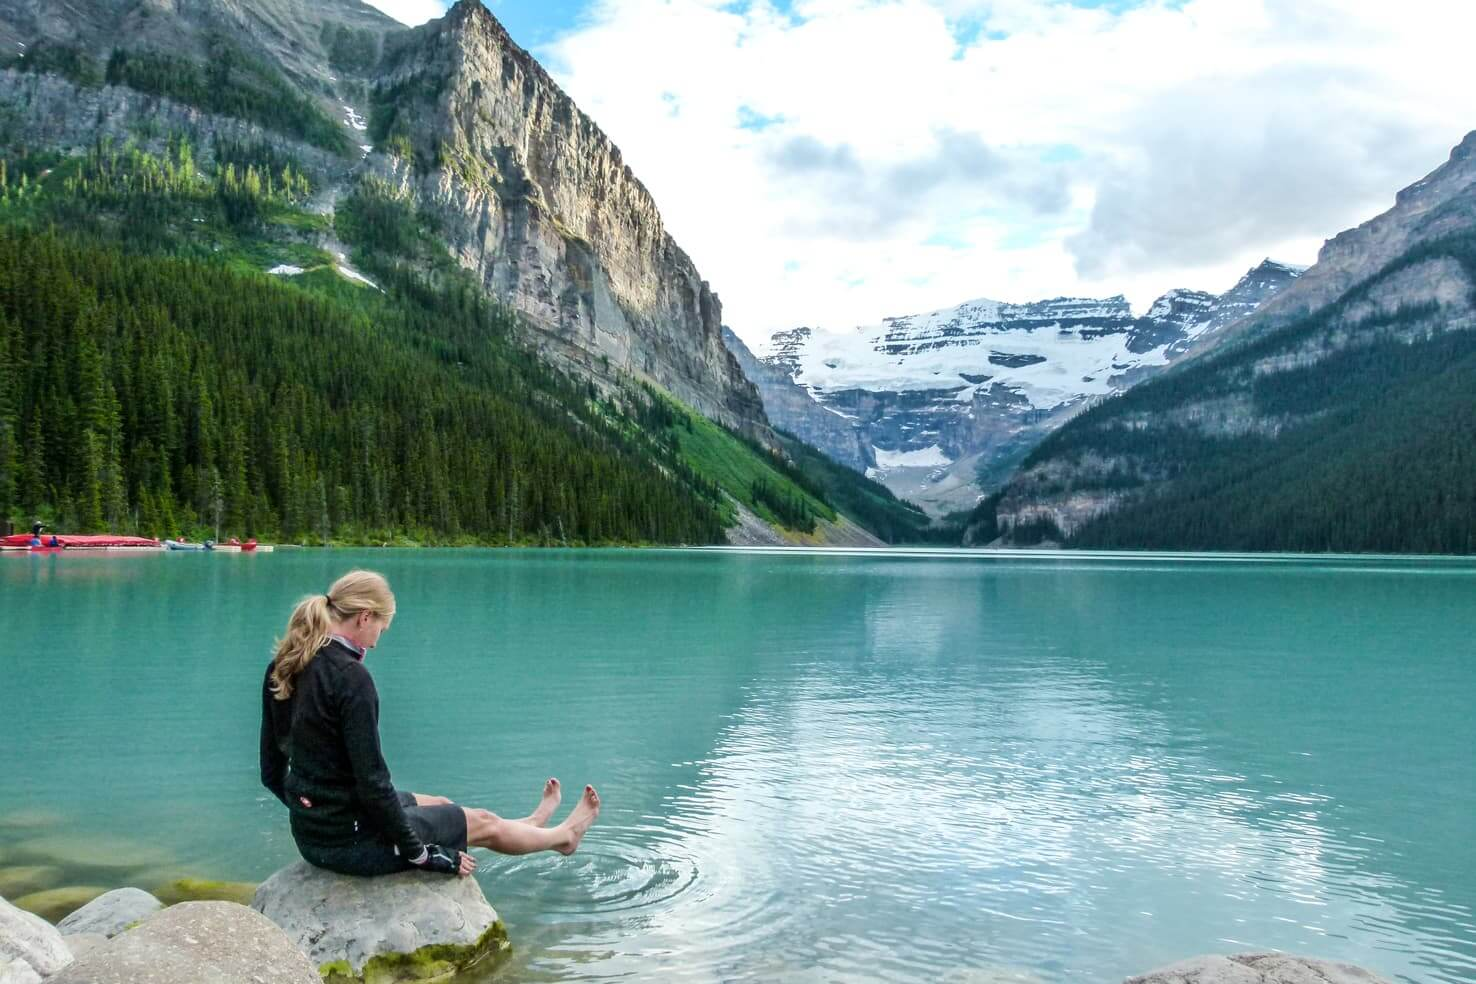 100 best things to do in Banff National Park, Canada - Jump in the glacial lake